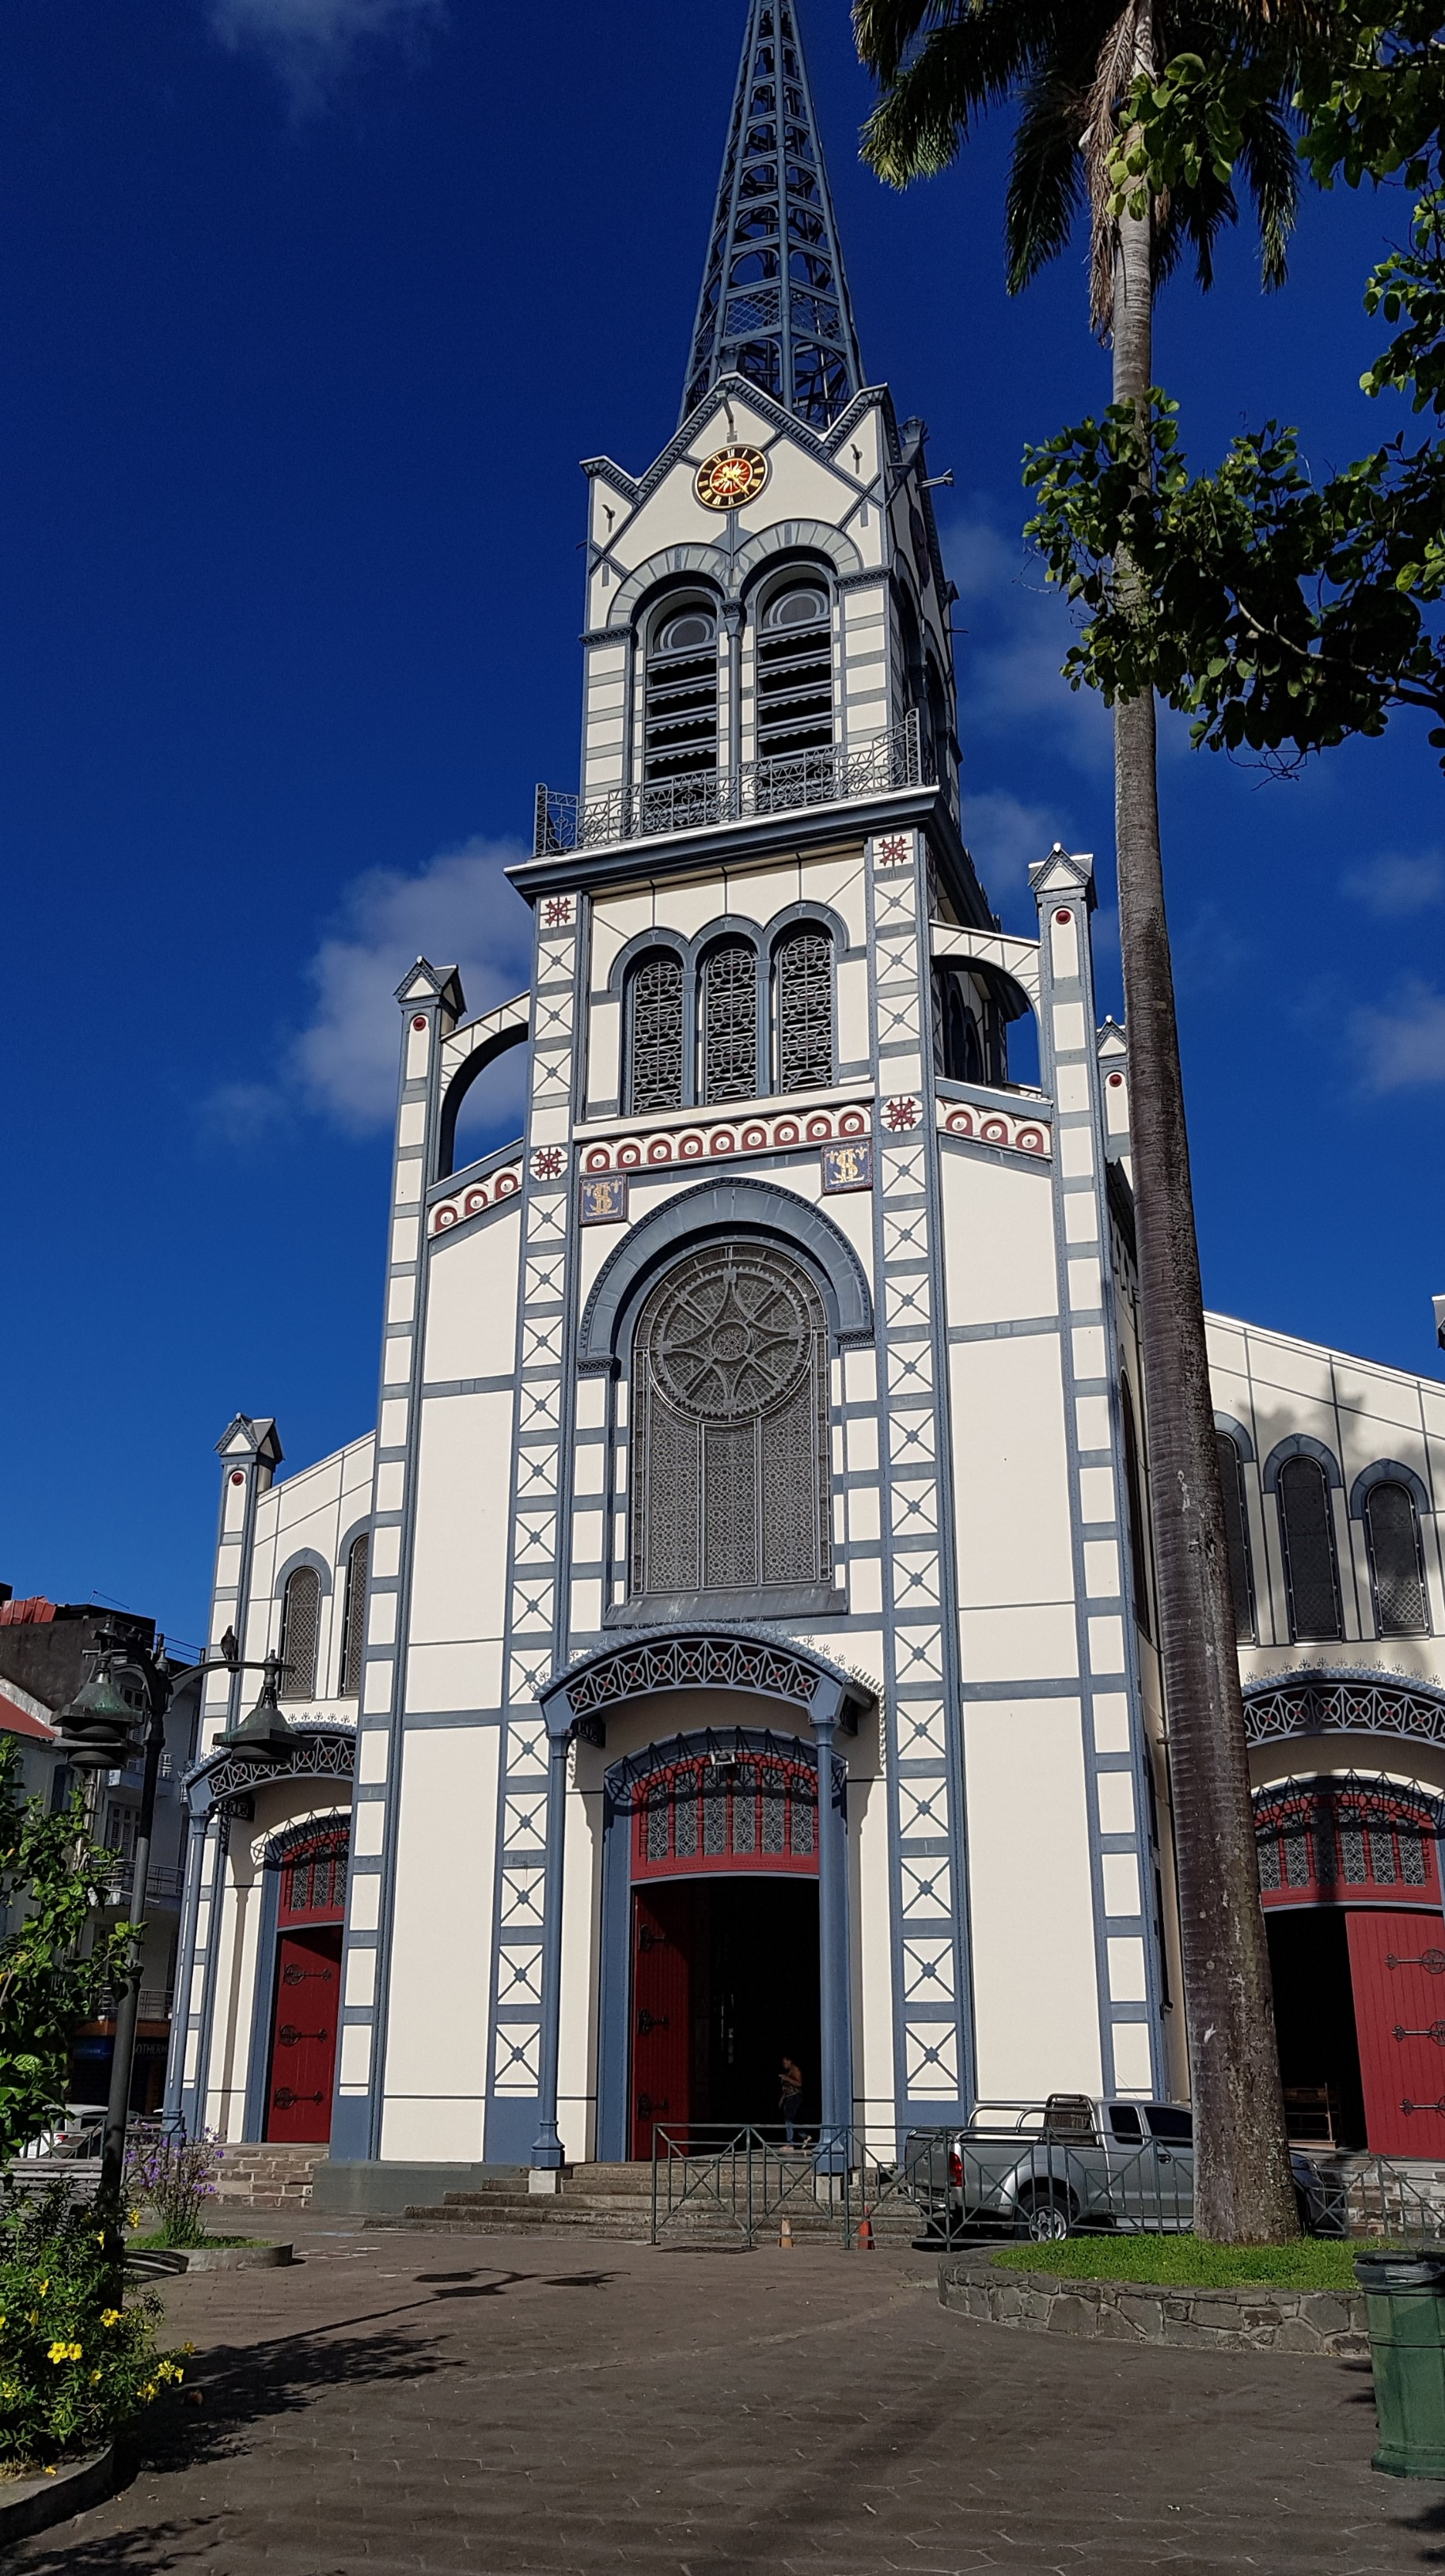 cathedrale_st_louis-1562762178.jpg